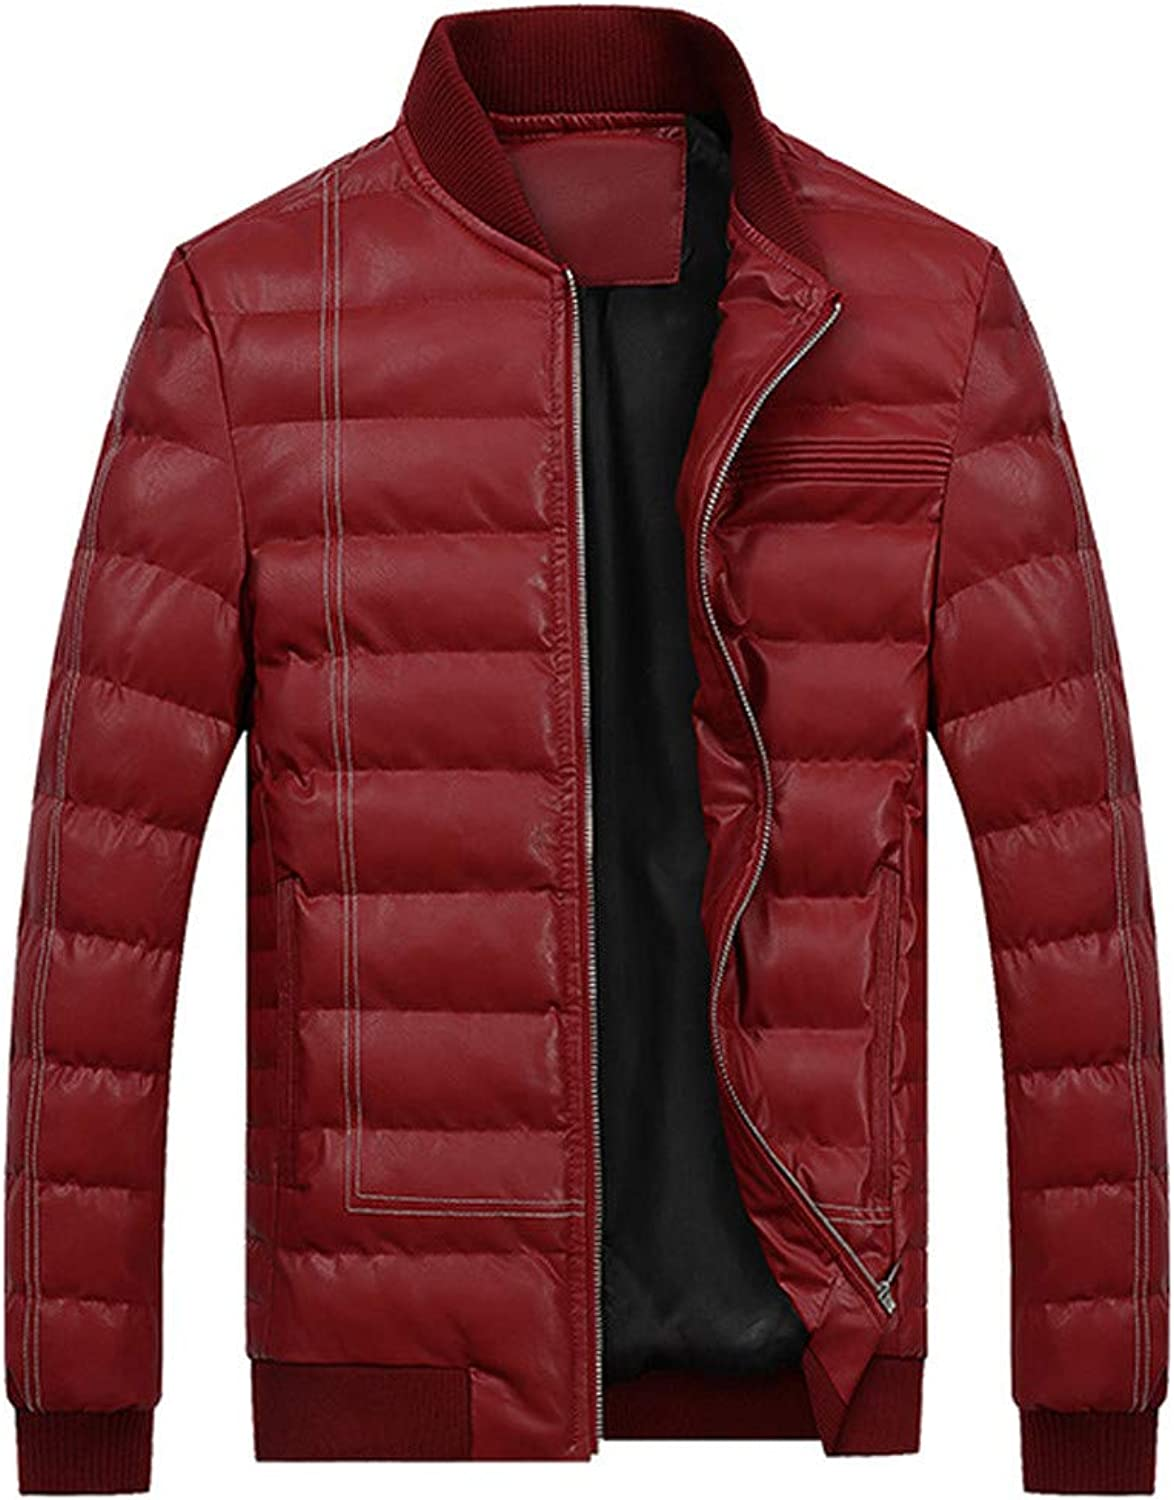 Men's Winter Coat Thickening Stand Collar Zipper Leather Jacket Cotton Padded Coat (color   Red, Size   2XL)